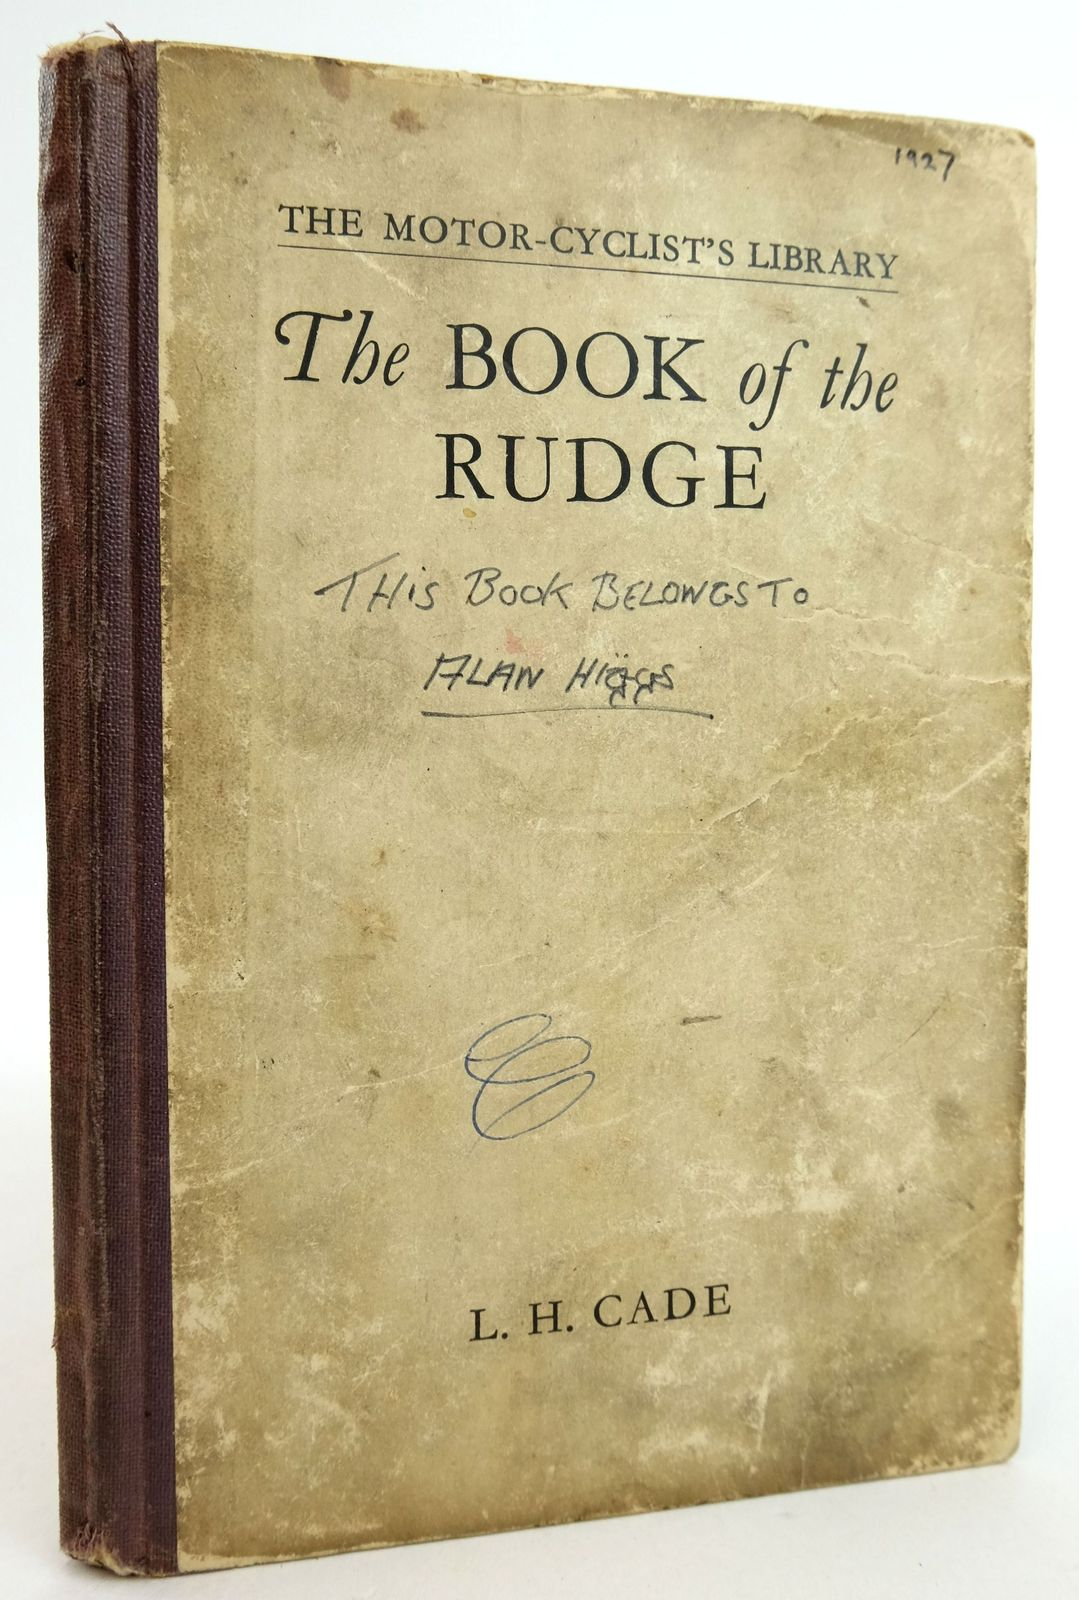 Photo of THE BOOK OF THE RUDGE- Stock Number: 1819808